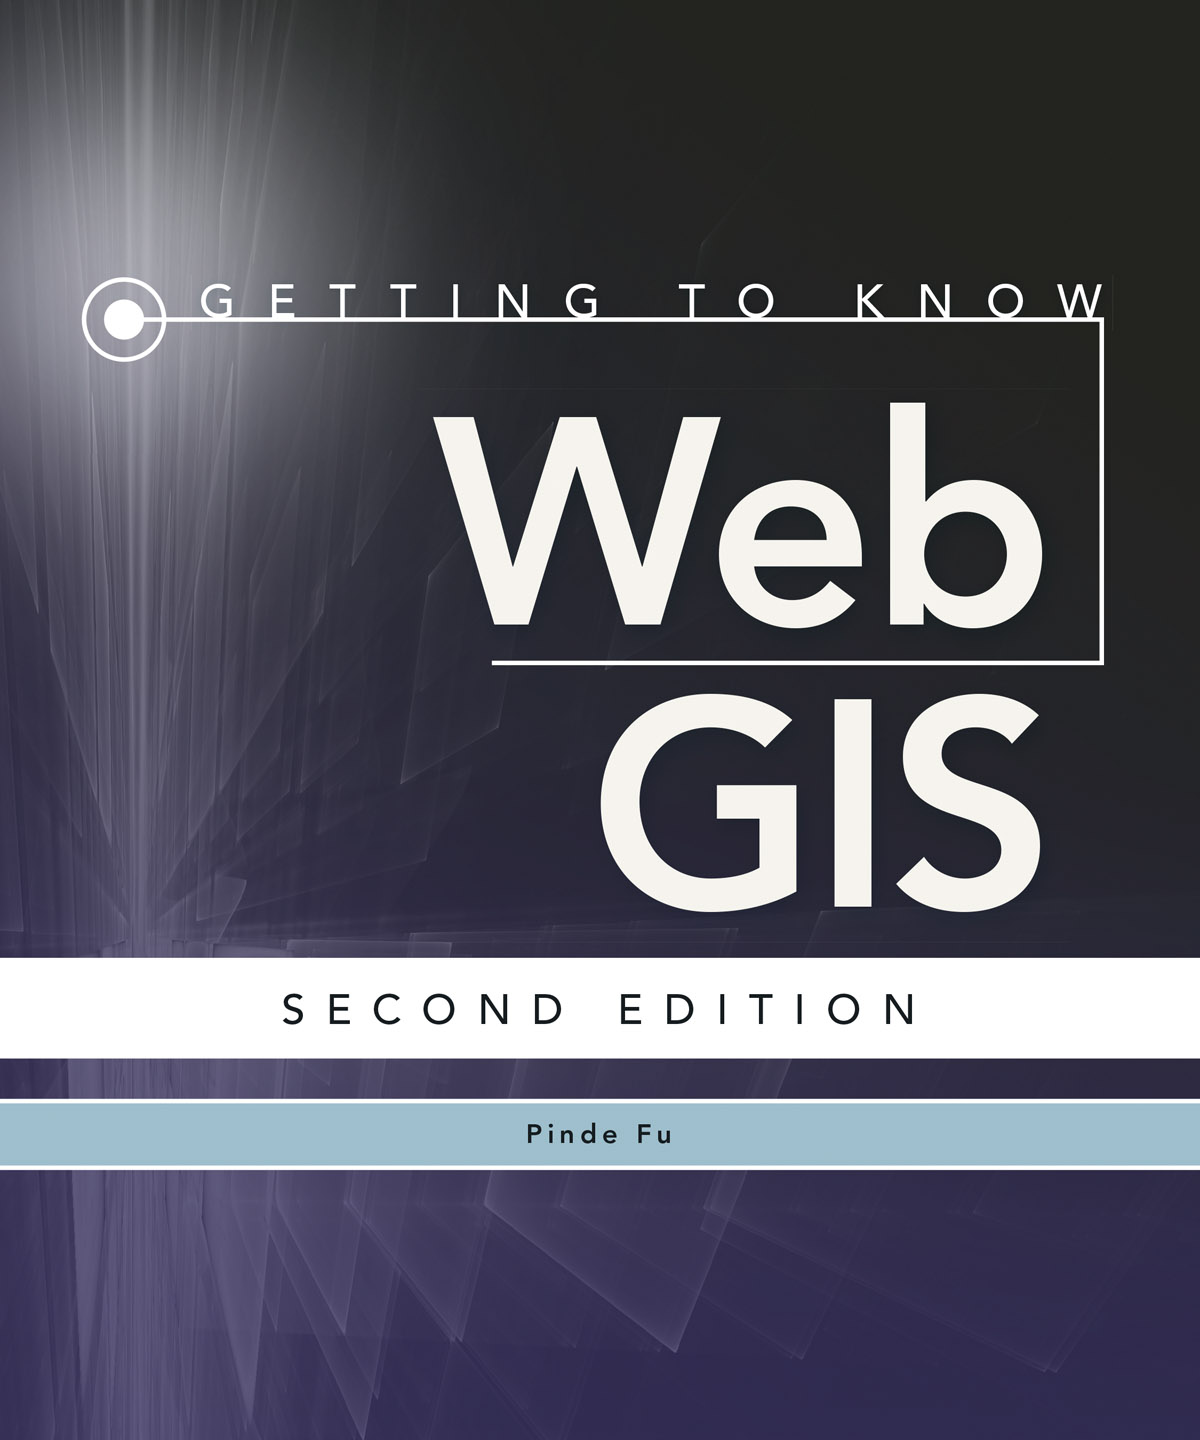 Getting to Know Web GIS, second edition, by Pinde Fu